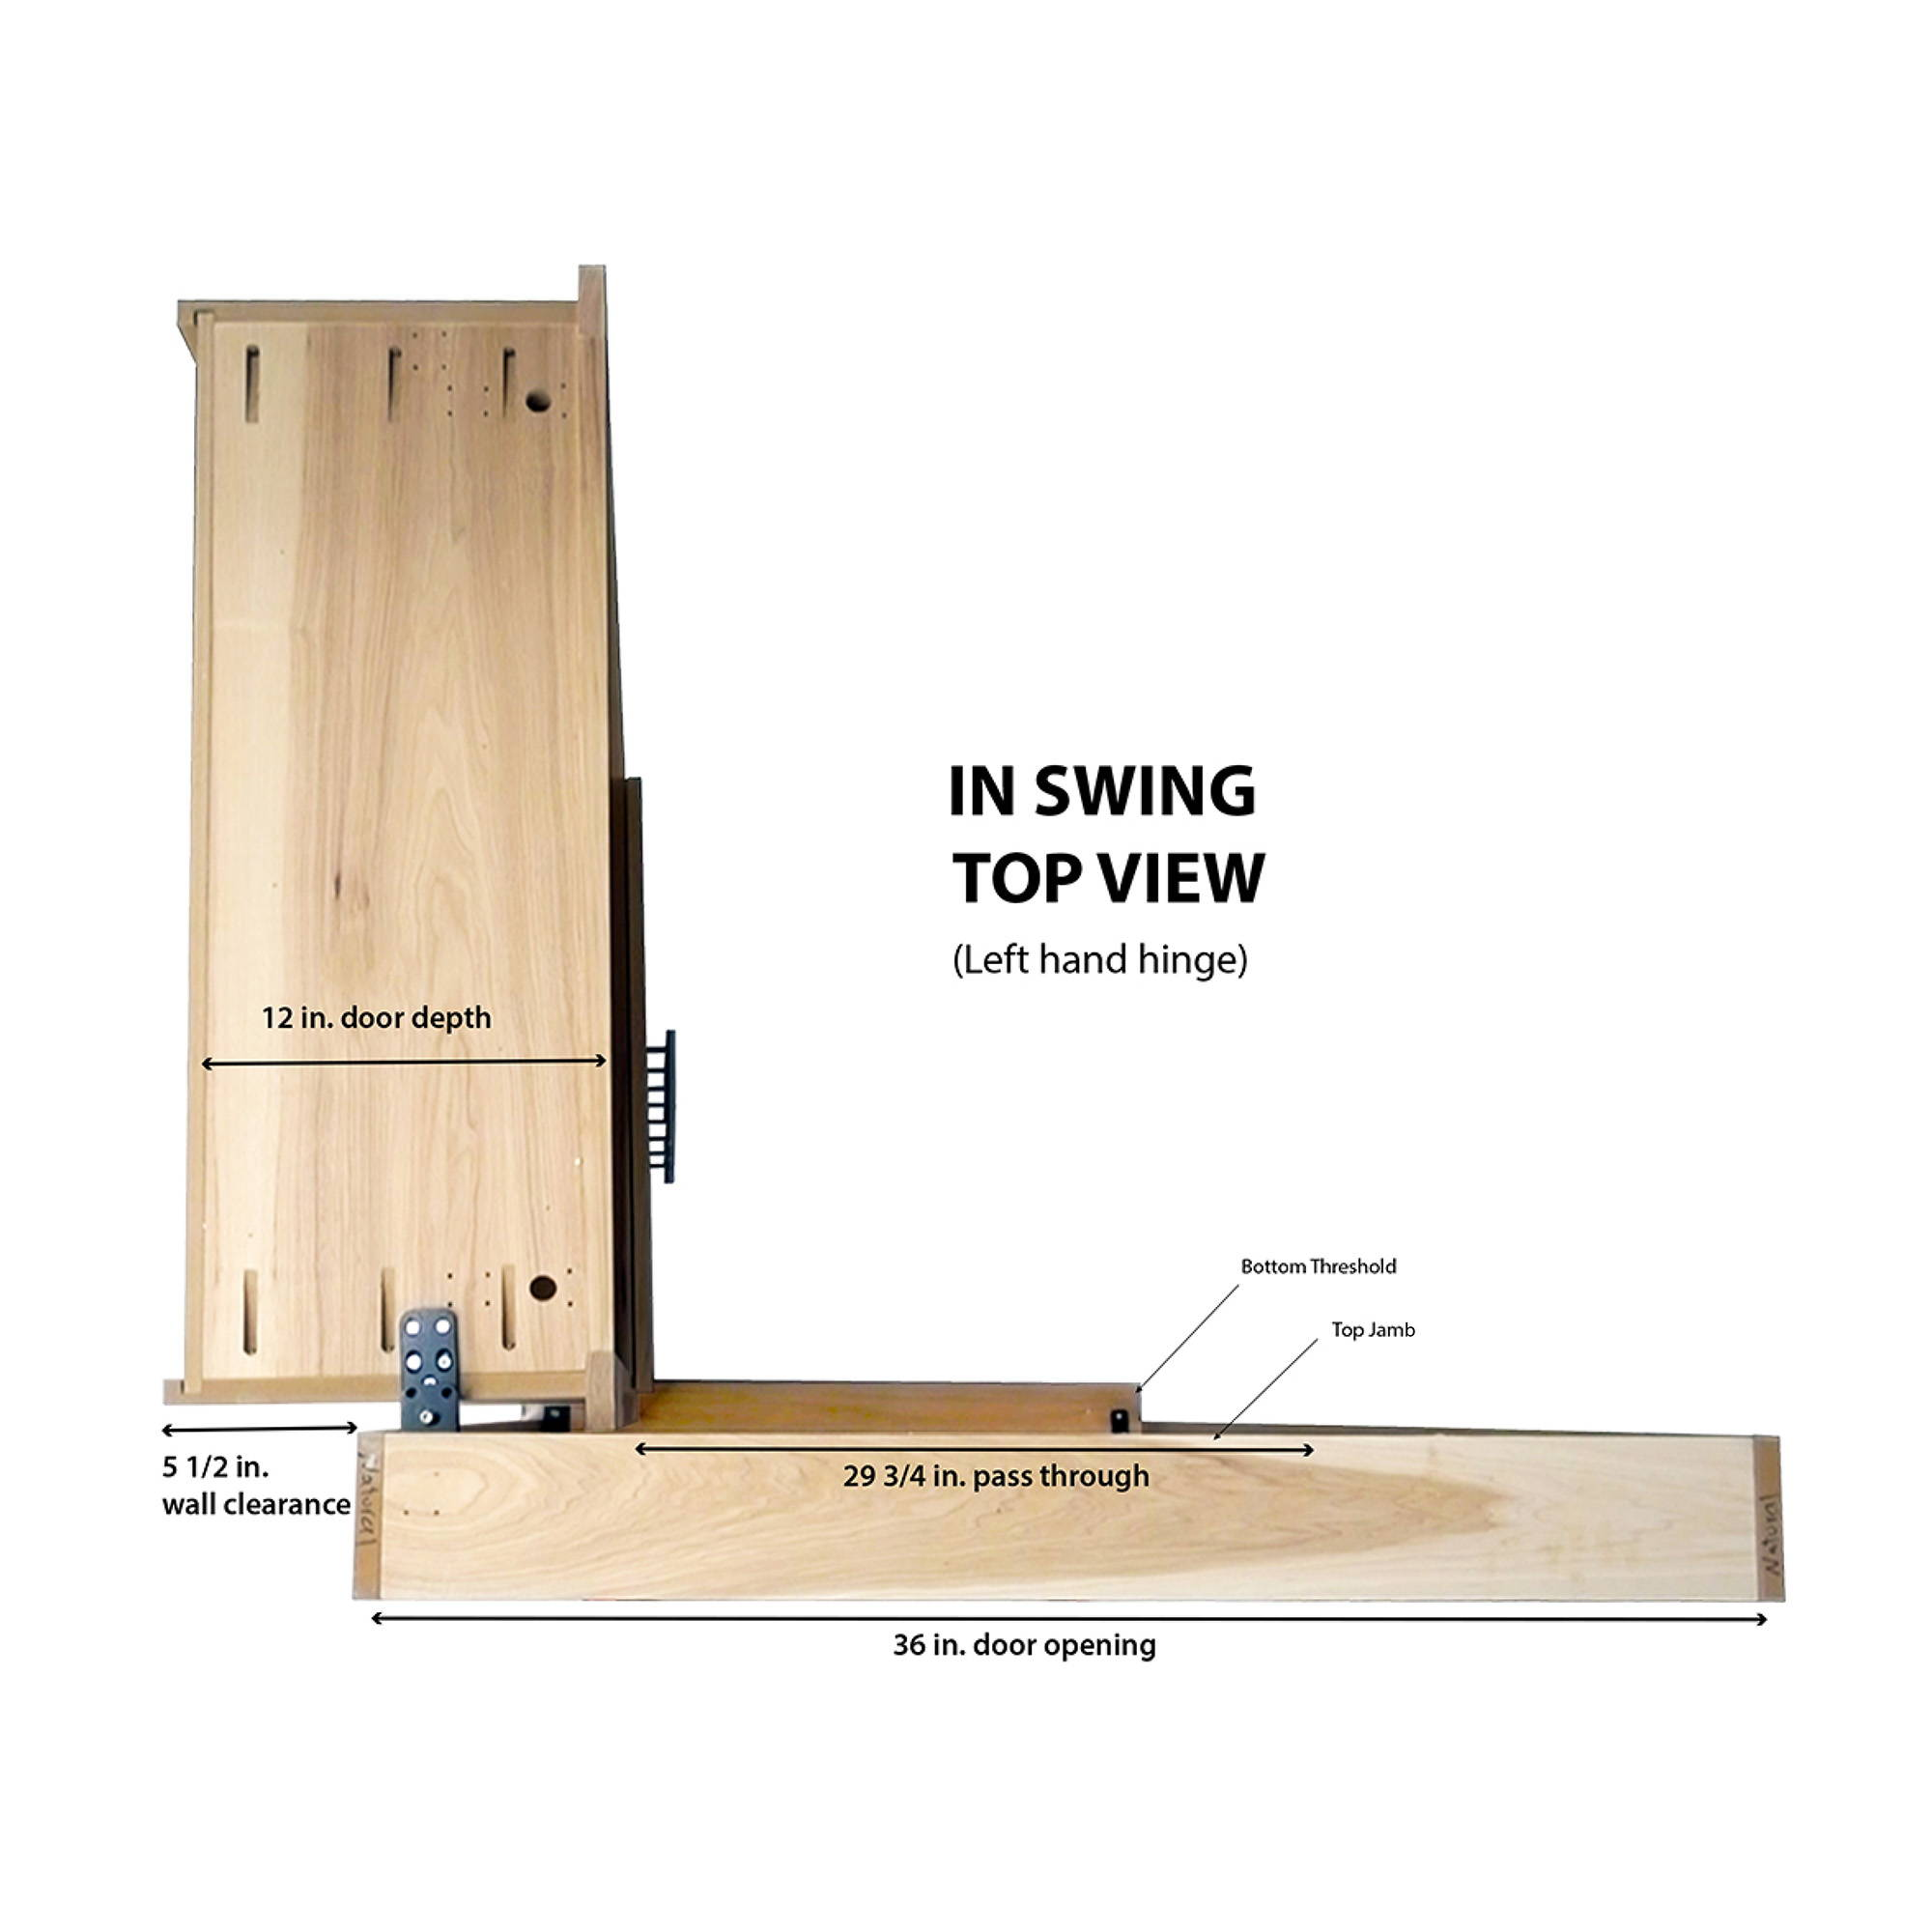 Top view of In-Swing Flush Mount Door